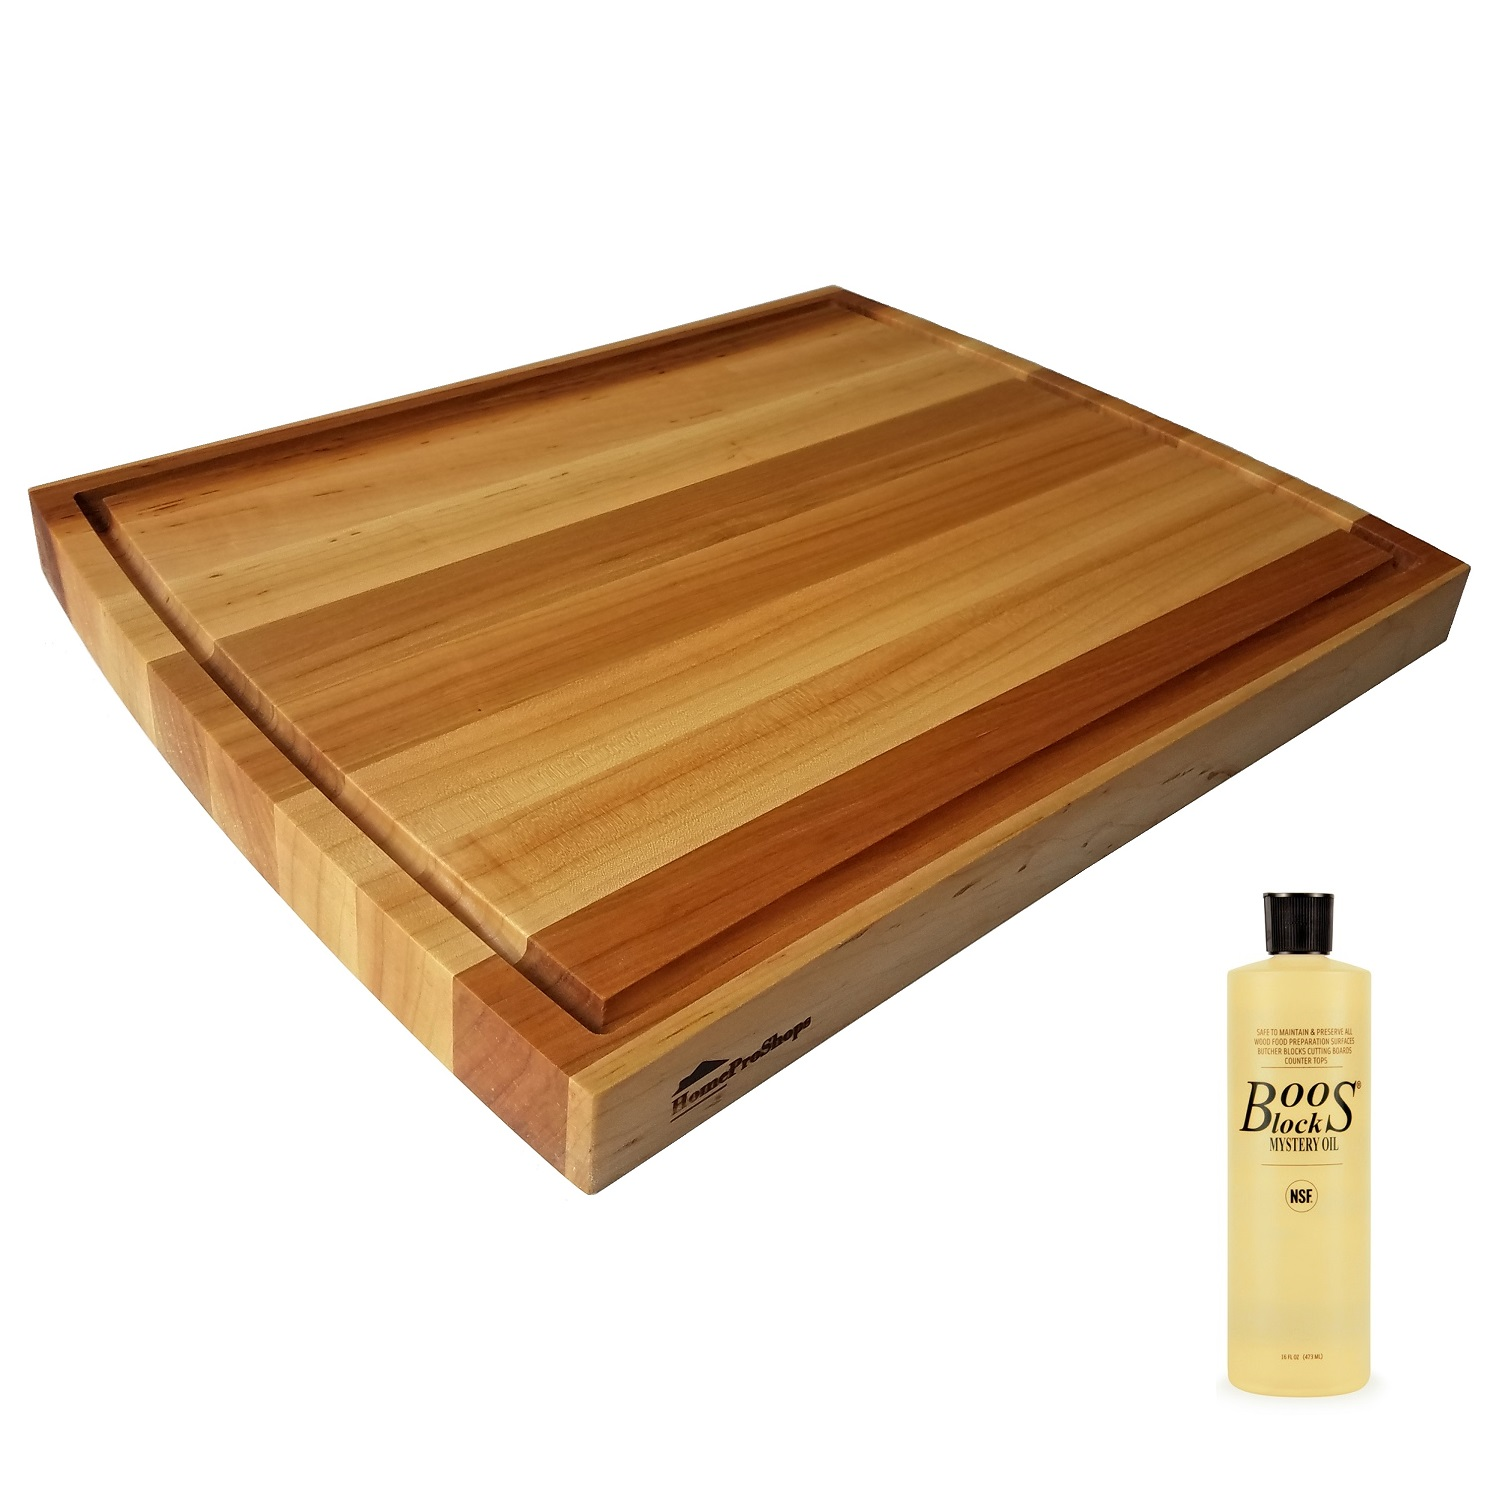 "HomeProShops 1-1/2"" x 15"" x 19"" Solid Maple Wood Butcher Block Cutting Board w Curved Ends and Juice Groove Channel 1 Side plus (1) 16 oz Bottle John Boos MYSB Mystery Oil Included - Reversible"